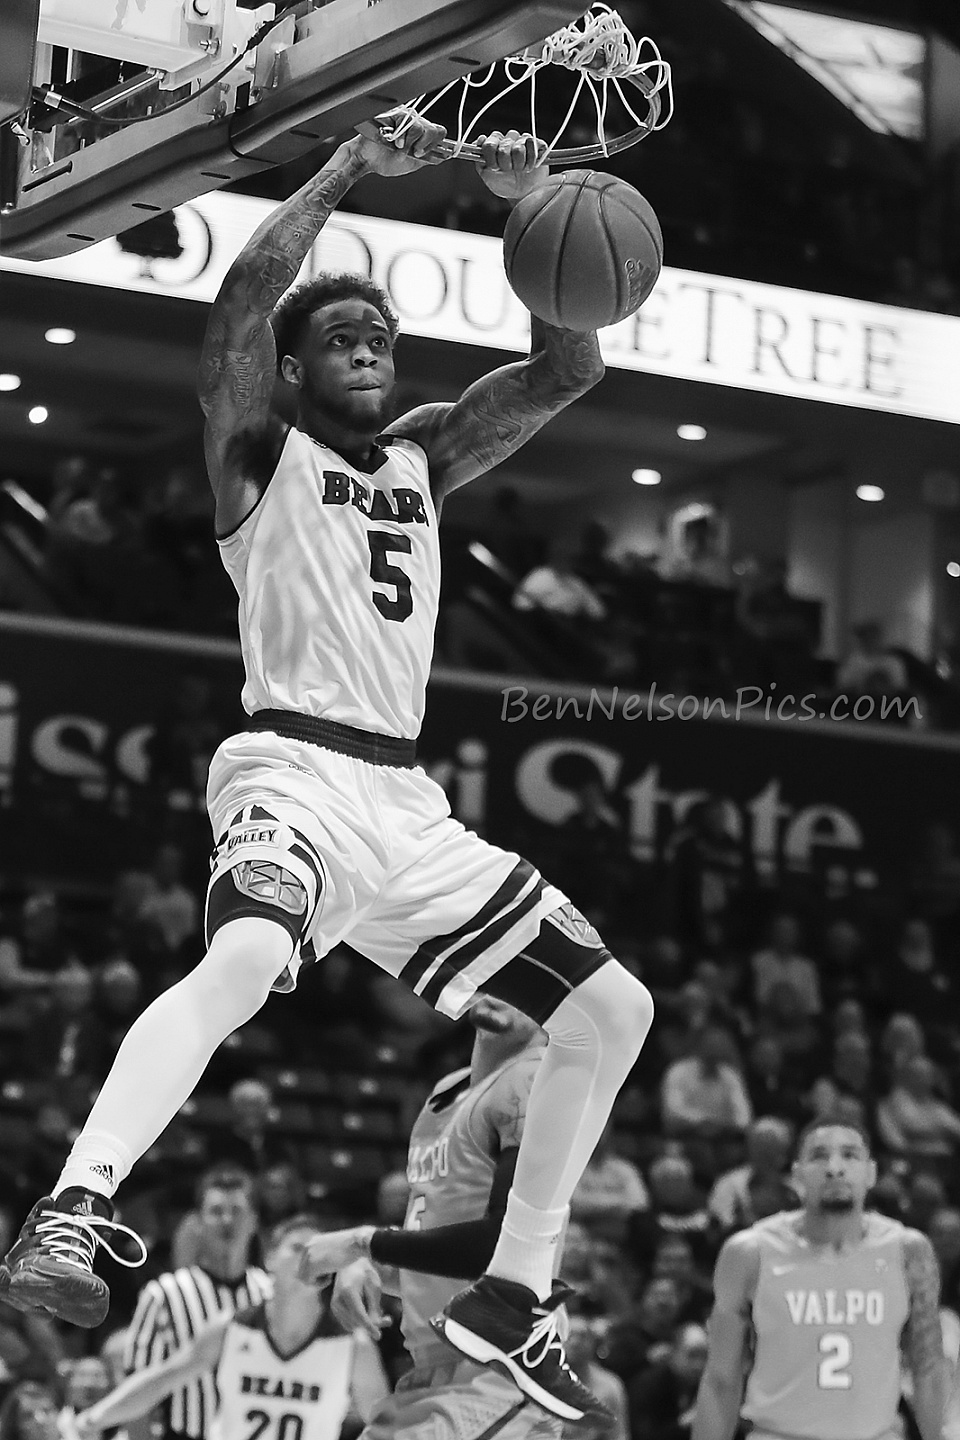 Missouri State Bears Basketball 2017-2018  - Another dunk by Obediah Church in black and white.